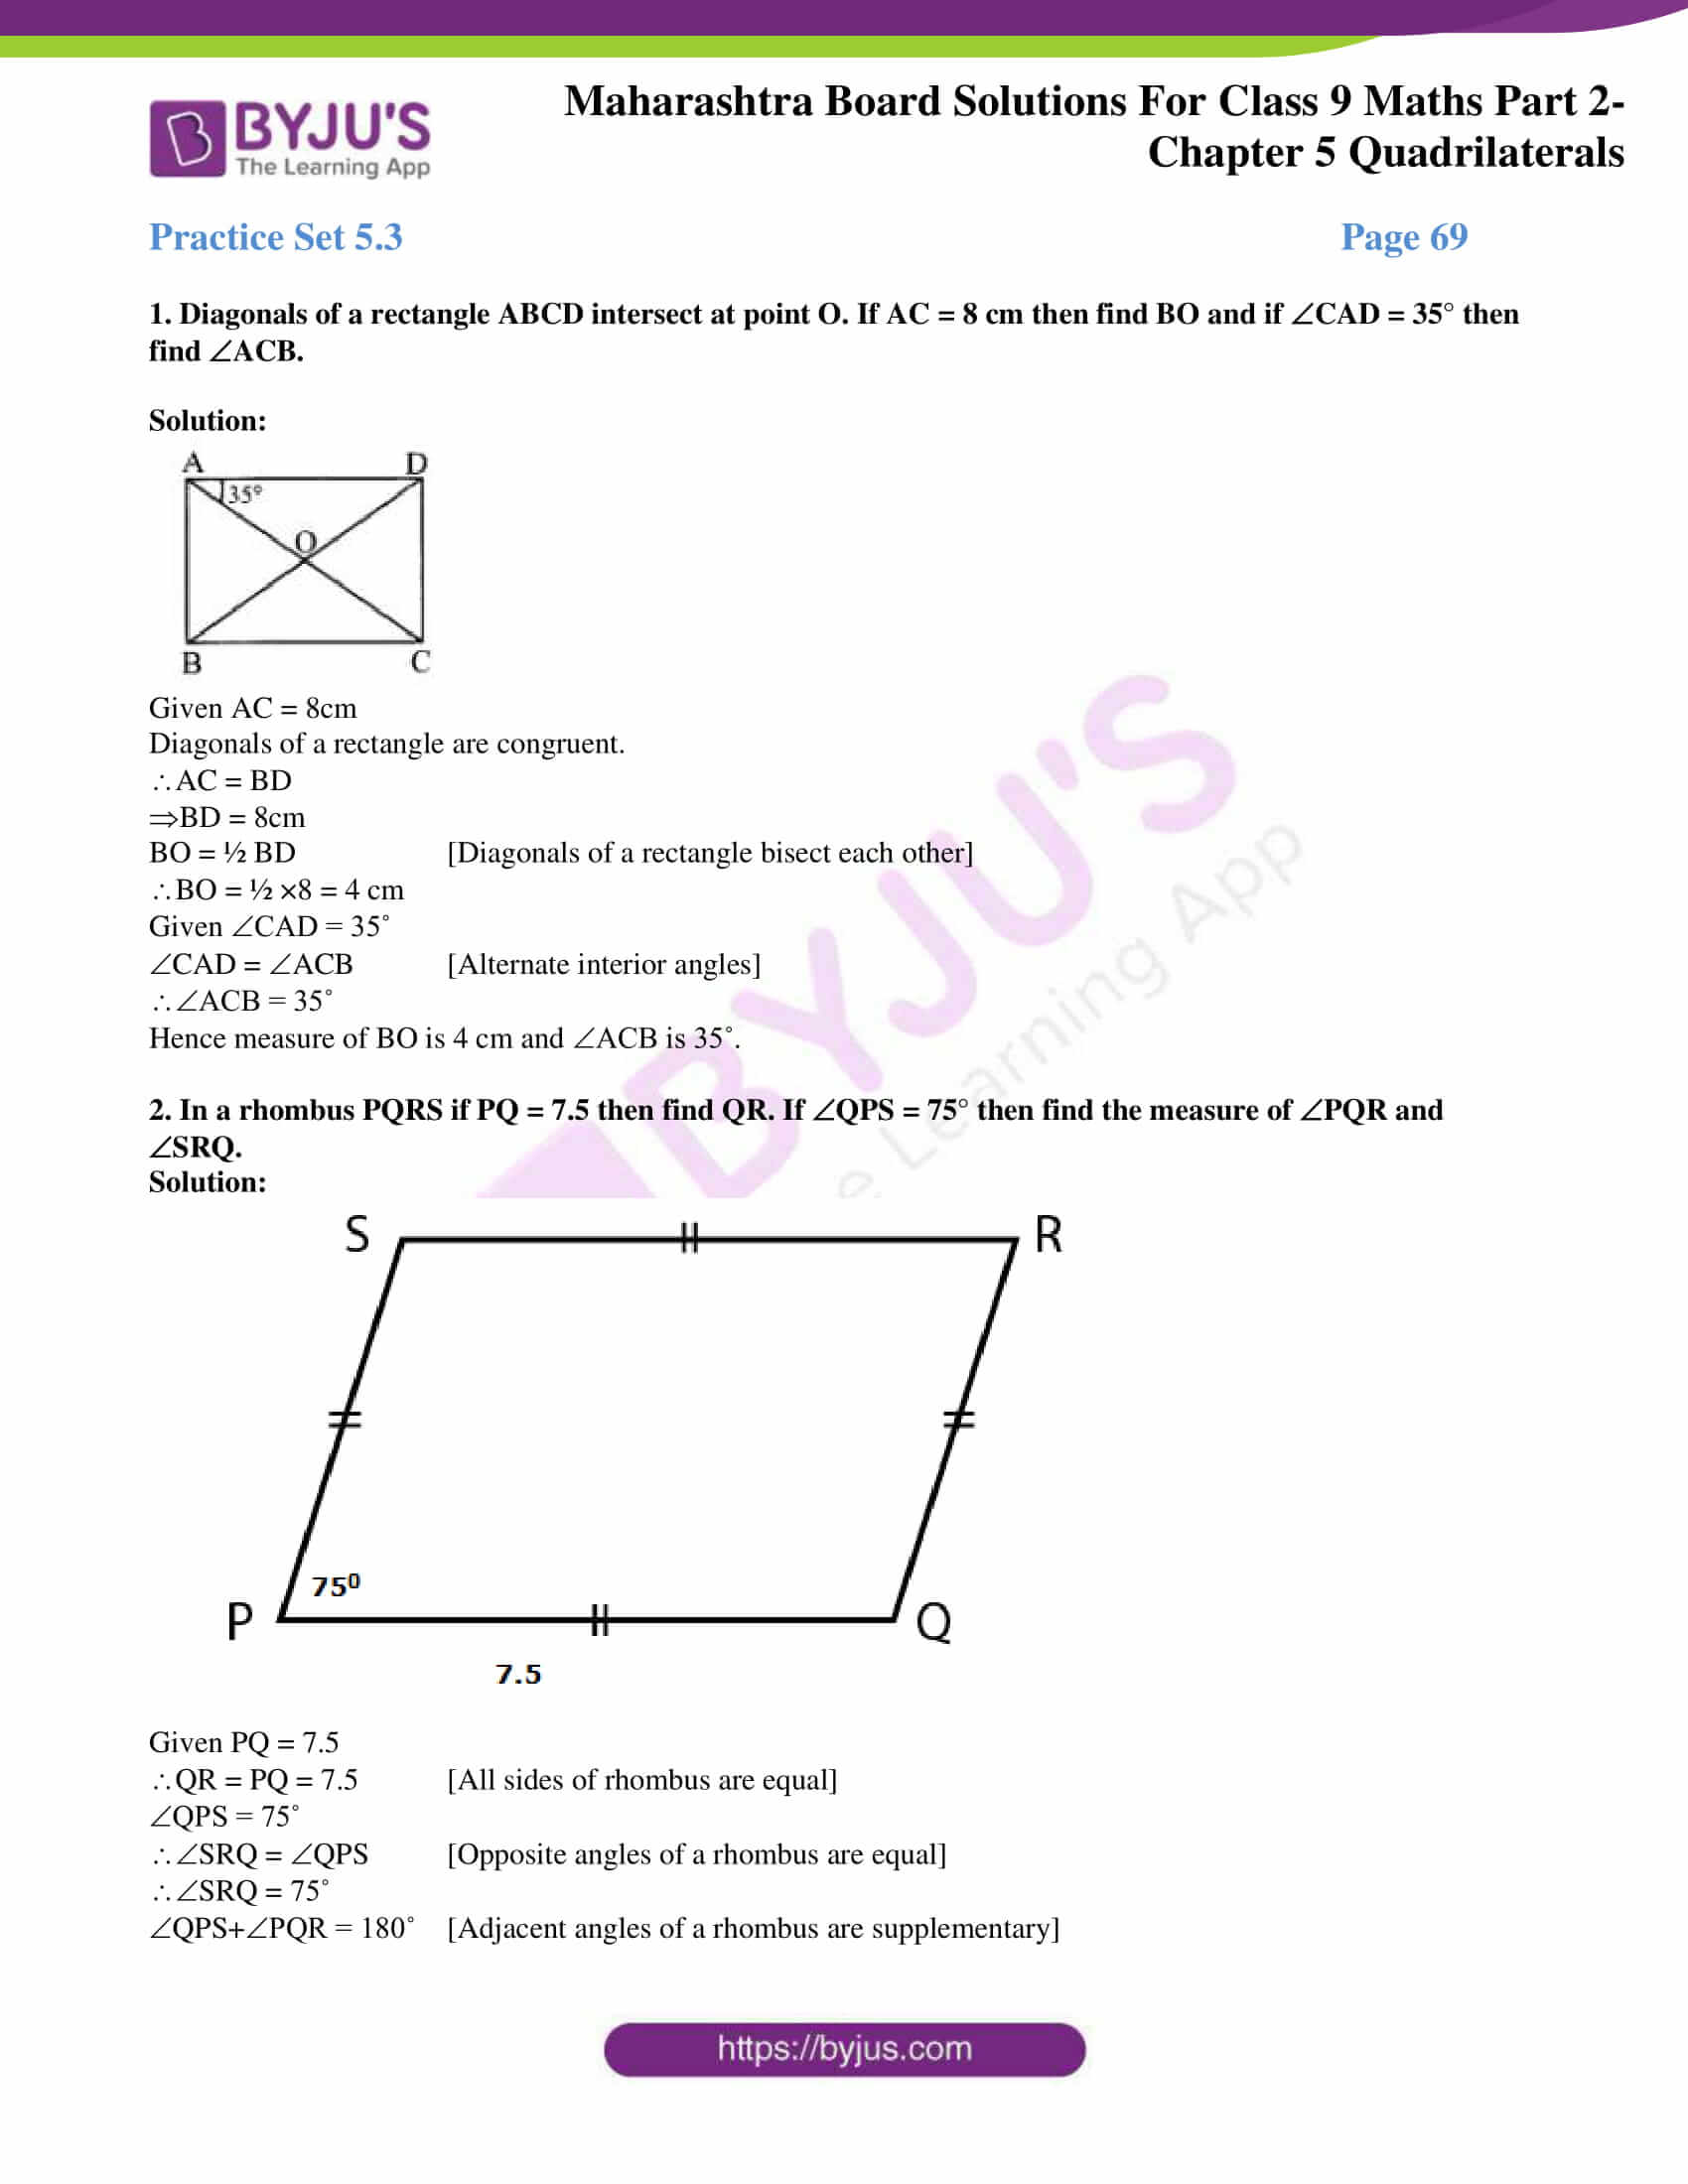 msbshse solutions for class 9 maths part 2 chapter 5 11